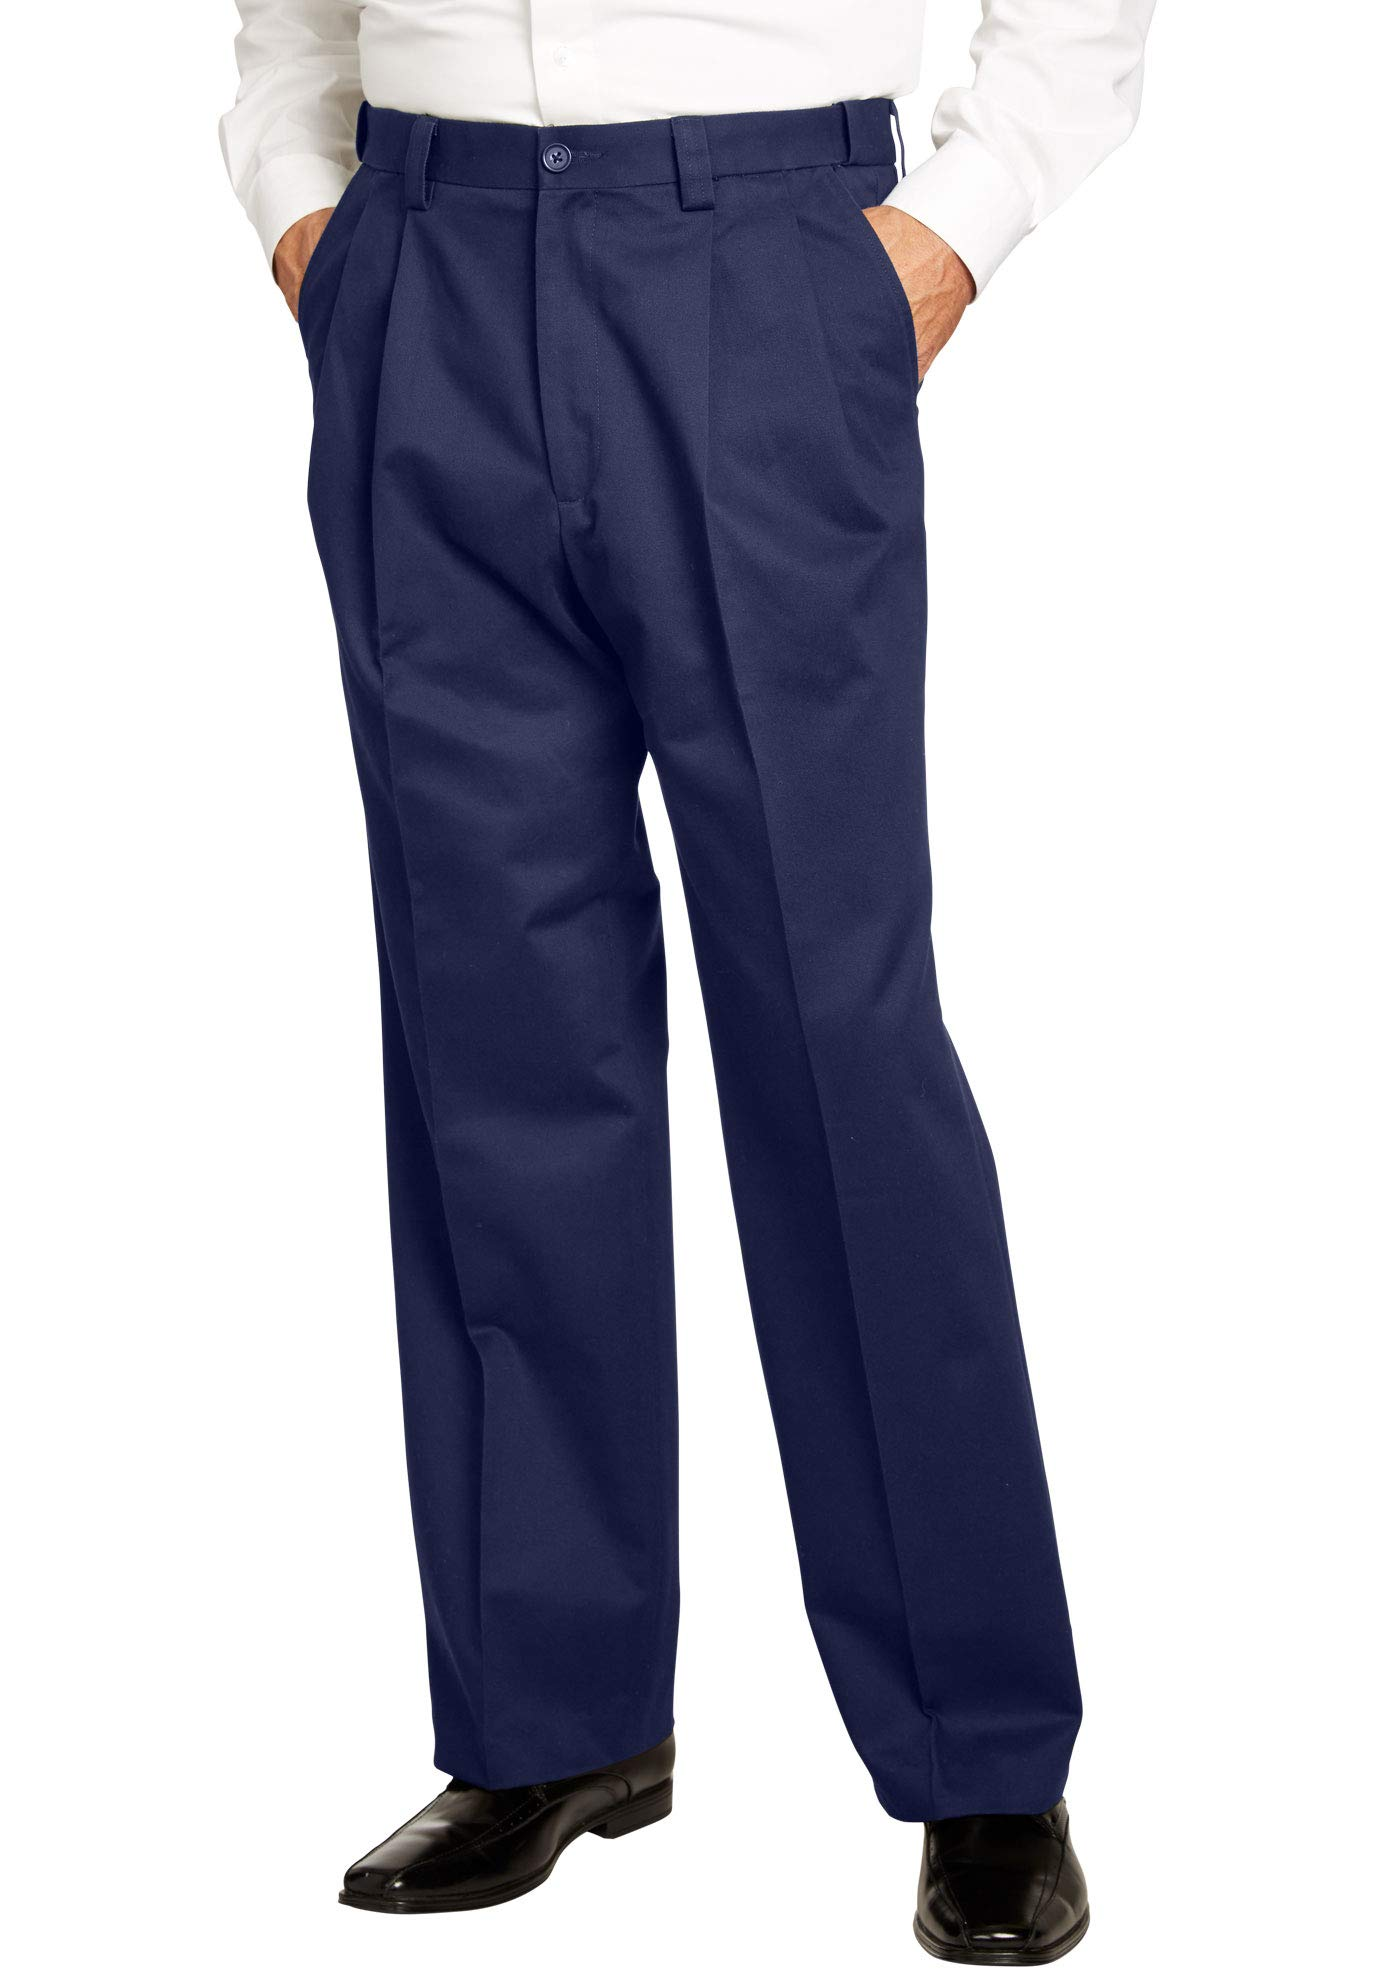 KingSize Men's Big & Tall Relaxed Fit Wrinkle-Free Expandable Waist Pleated Pants, Navy Big-7238